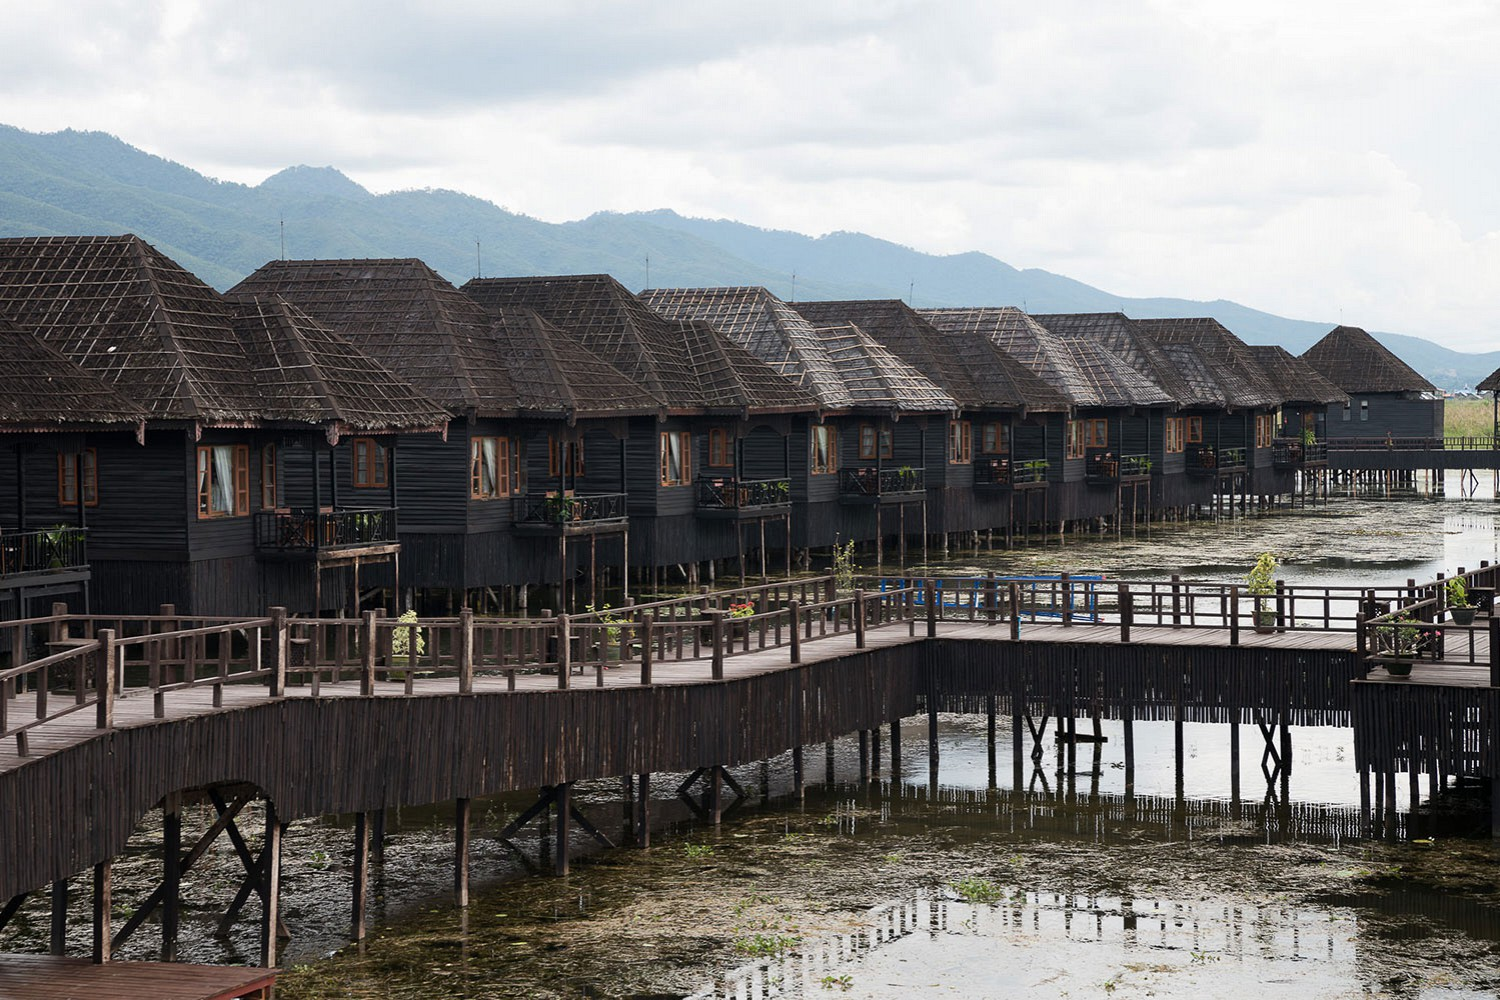 Myanmar treasure resort Inle Lake